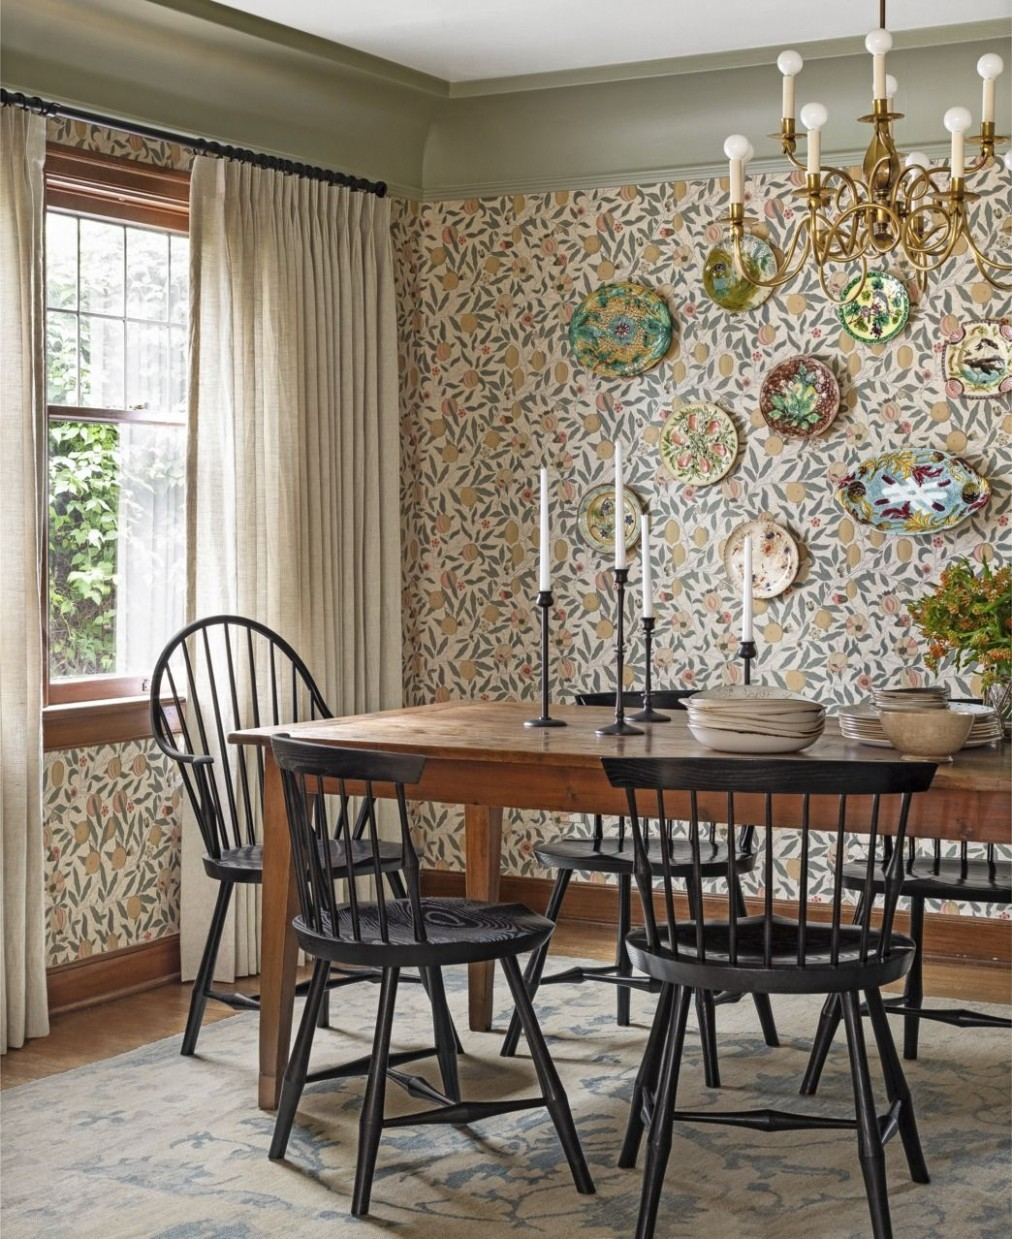 9 Best Dining Room Decorating Ideas - Country Dining Room Decor - Window Ideas For Dining Room